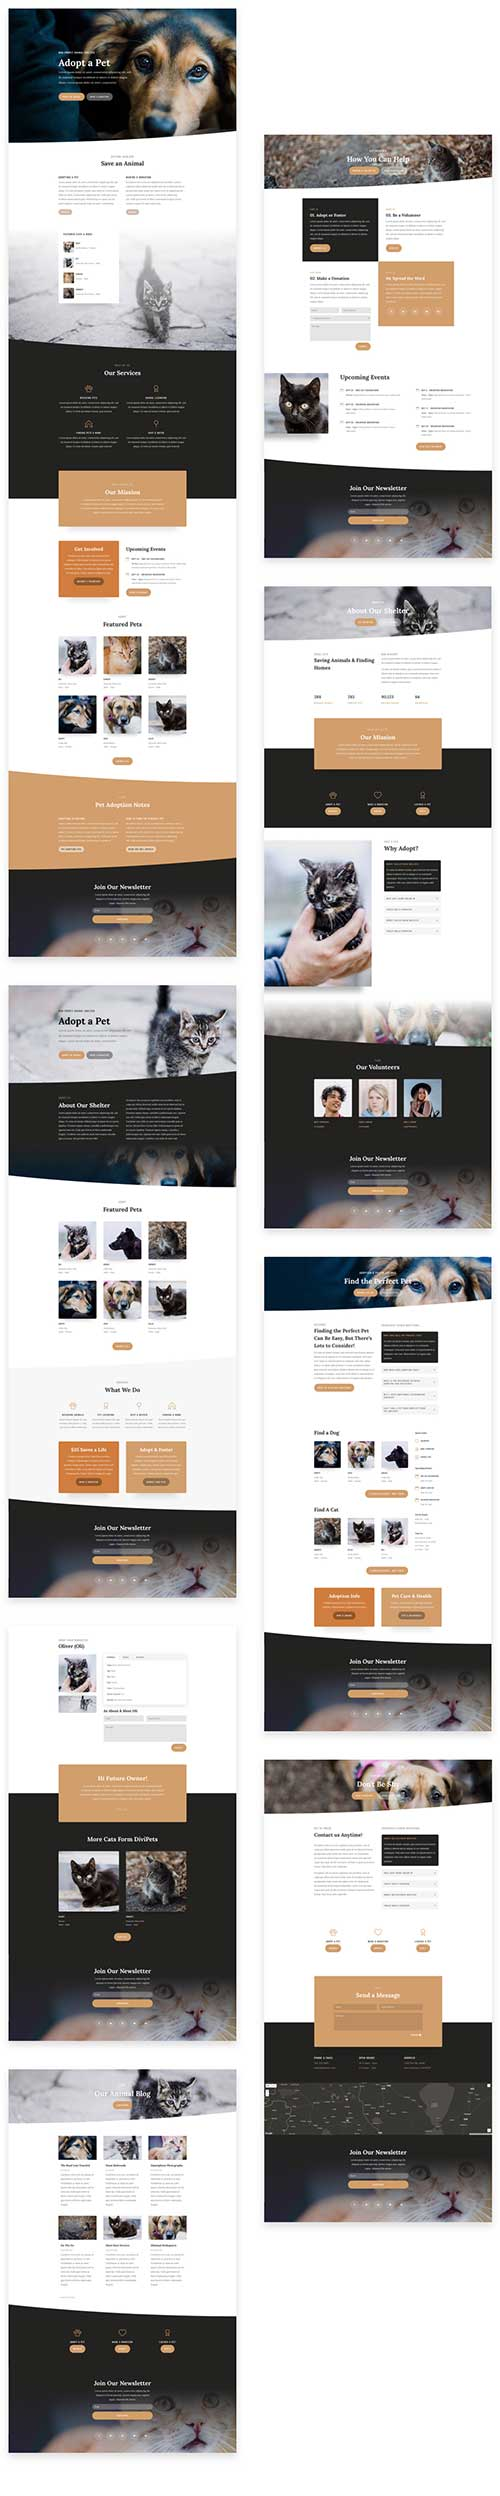 divi layout for animal shelter